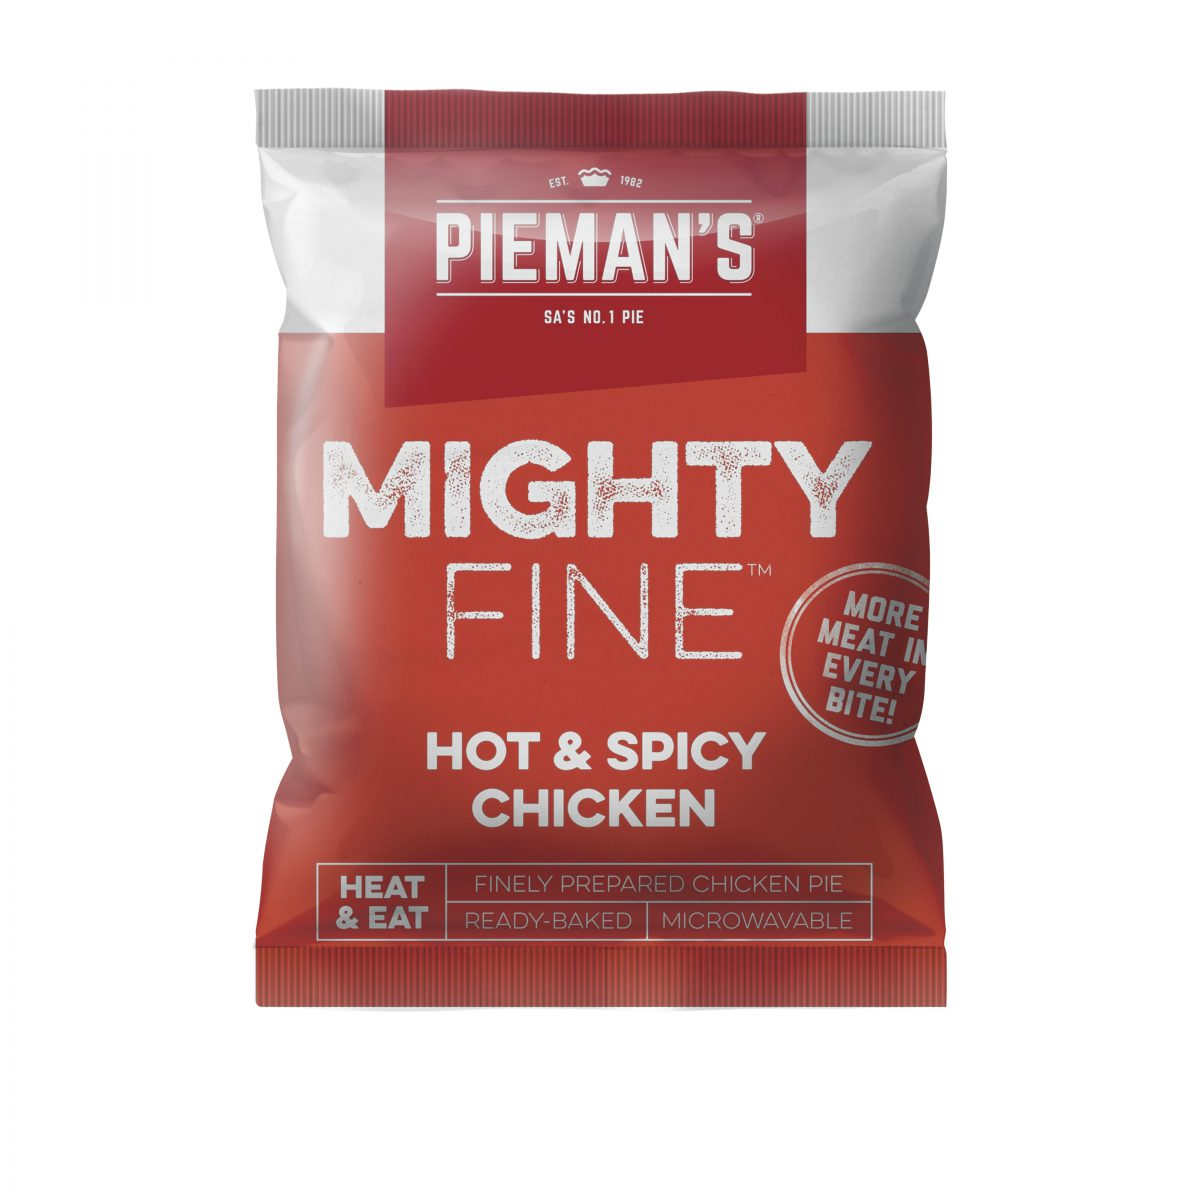 Pieman's Mighty Fine hot and spicy